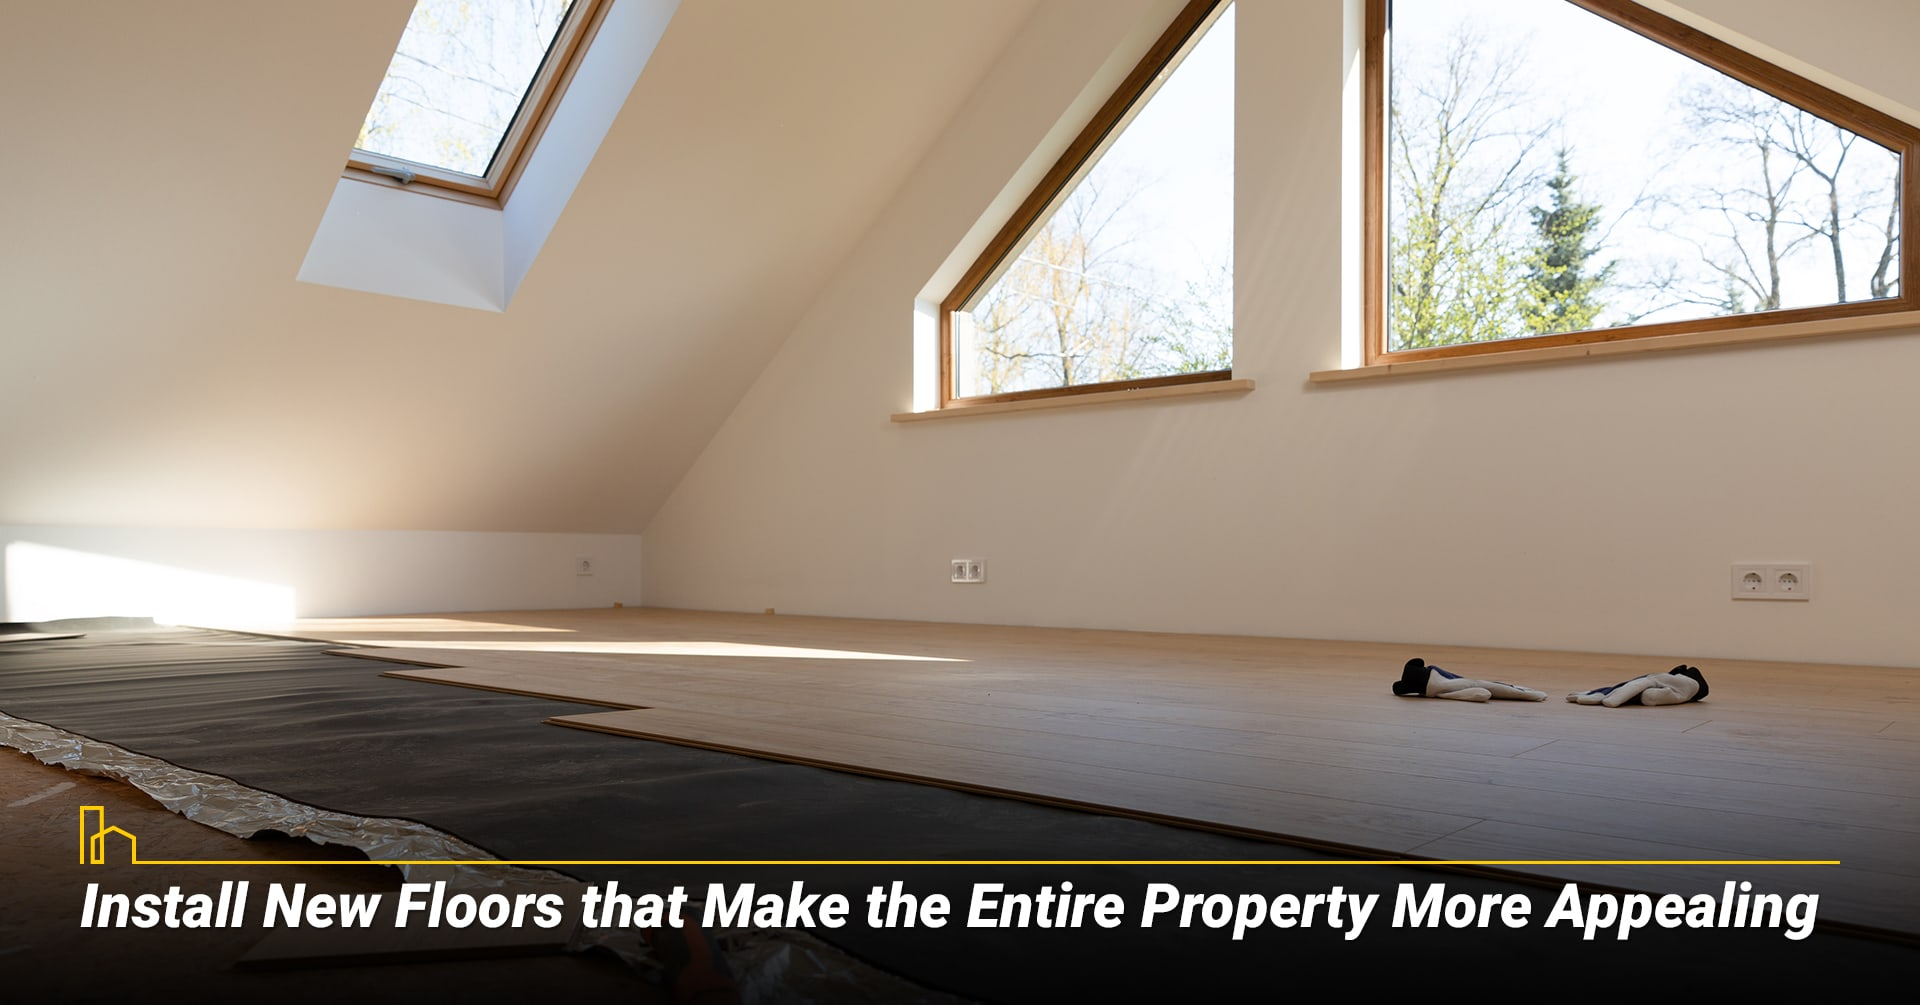 Install New Floors that Make the Entire Property More Appealing, upgrade your floor